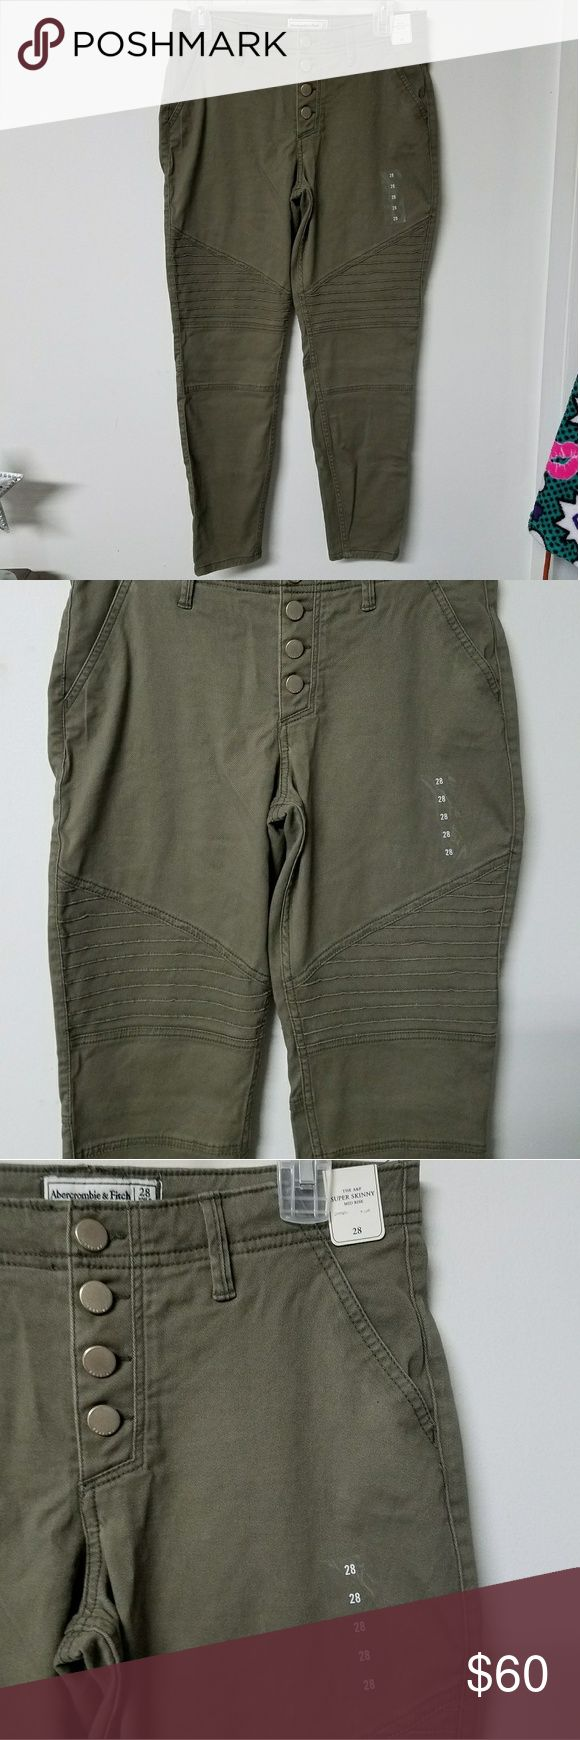 Abercrombie and Fitch Olive green pants size 28/5 Up for sale is a pair of brand new with tags Abercrombie and Fitch Olive green cargo pants. They are mid rise and fit a little bit looser for the size. They are a size 28 which is also known as a size 5 in juniors.   I would say these could definitely fit someone more petite or medium height. These are a skinny fit, but I would say it's more on the bottom where it is more fitted. Please feel free to make me an offer and thanks for looking…